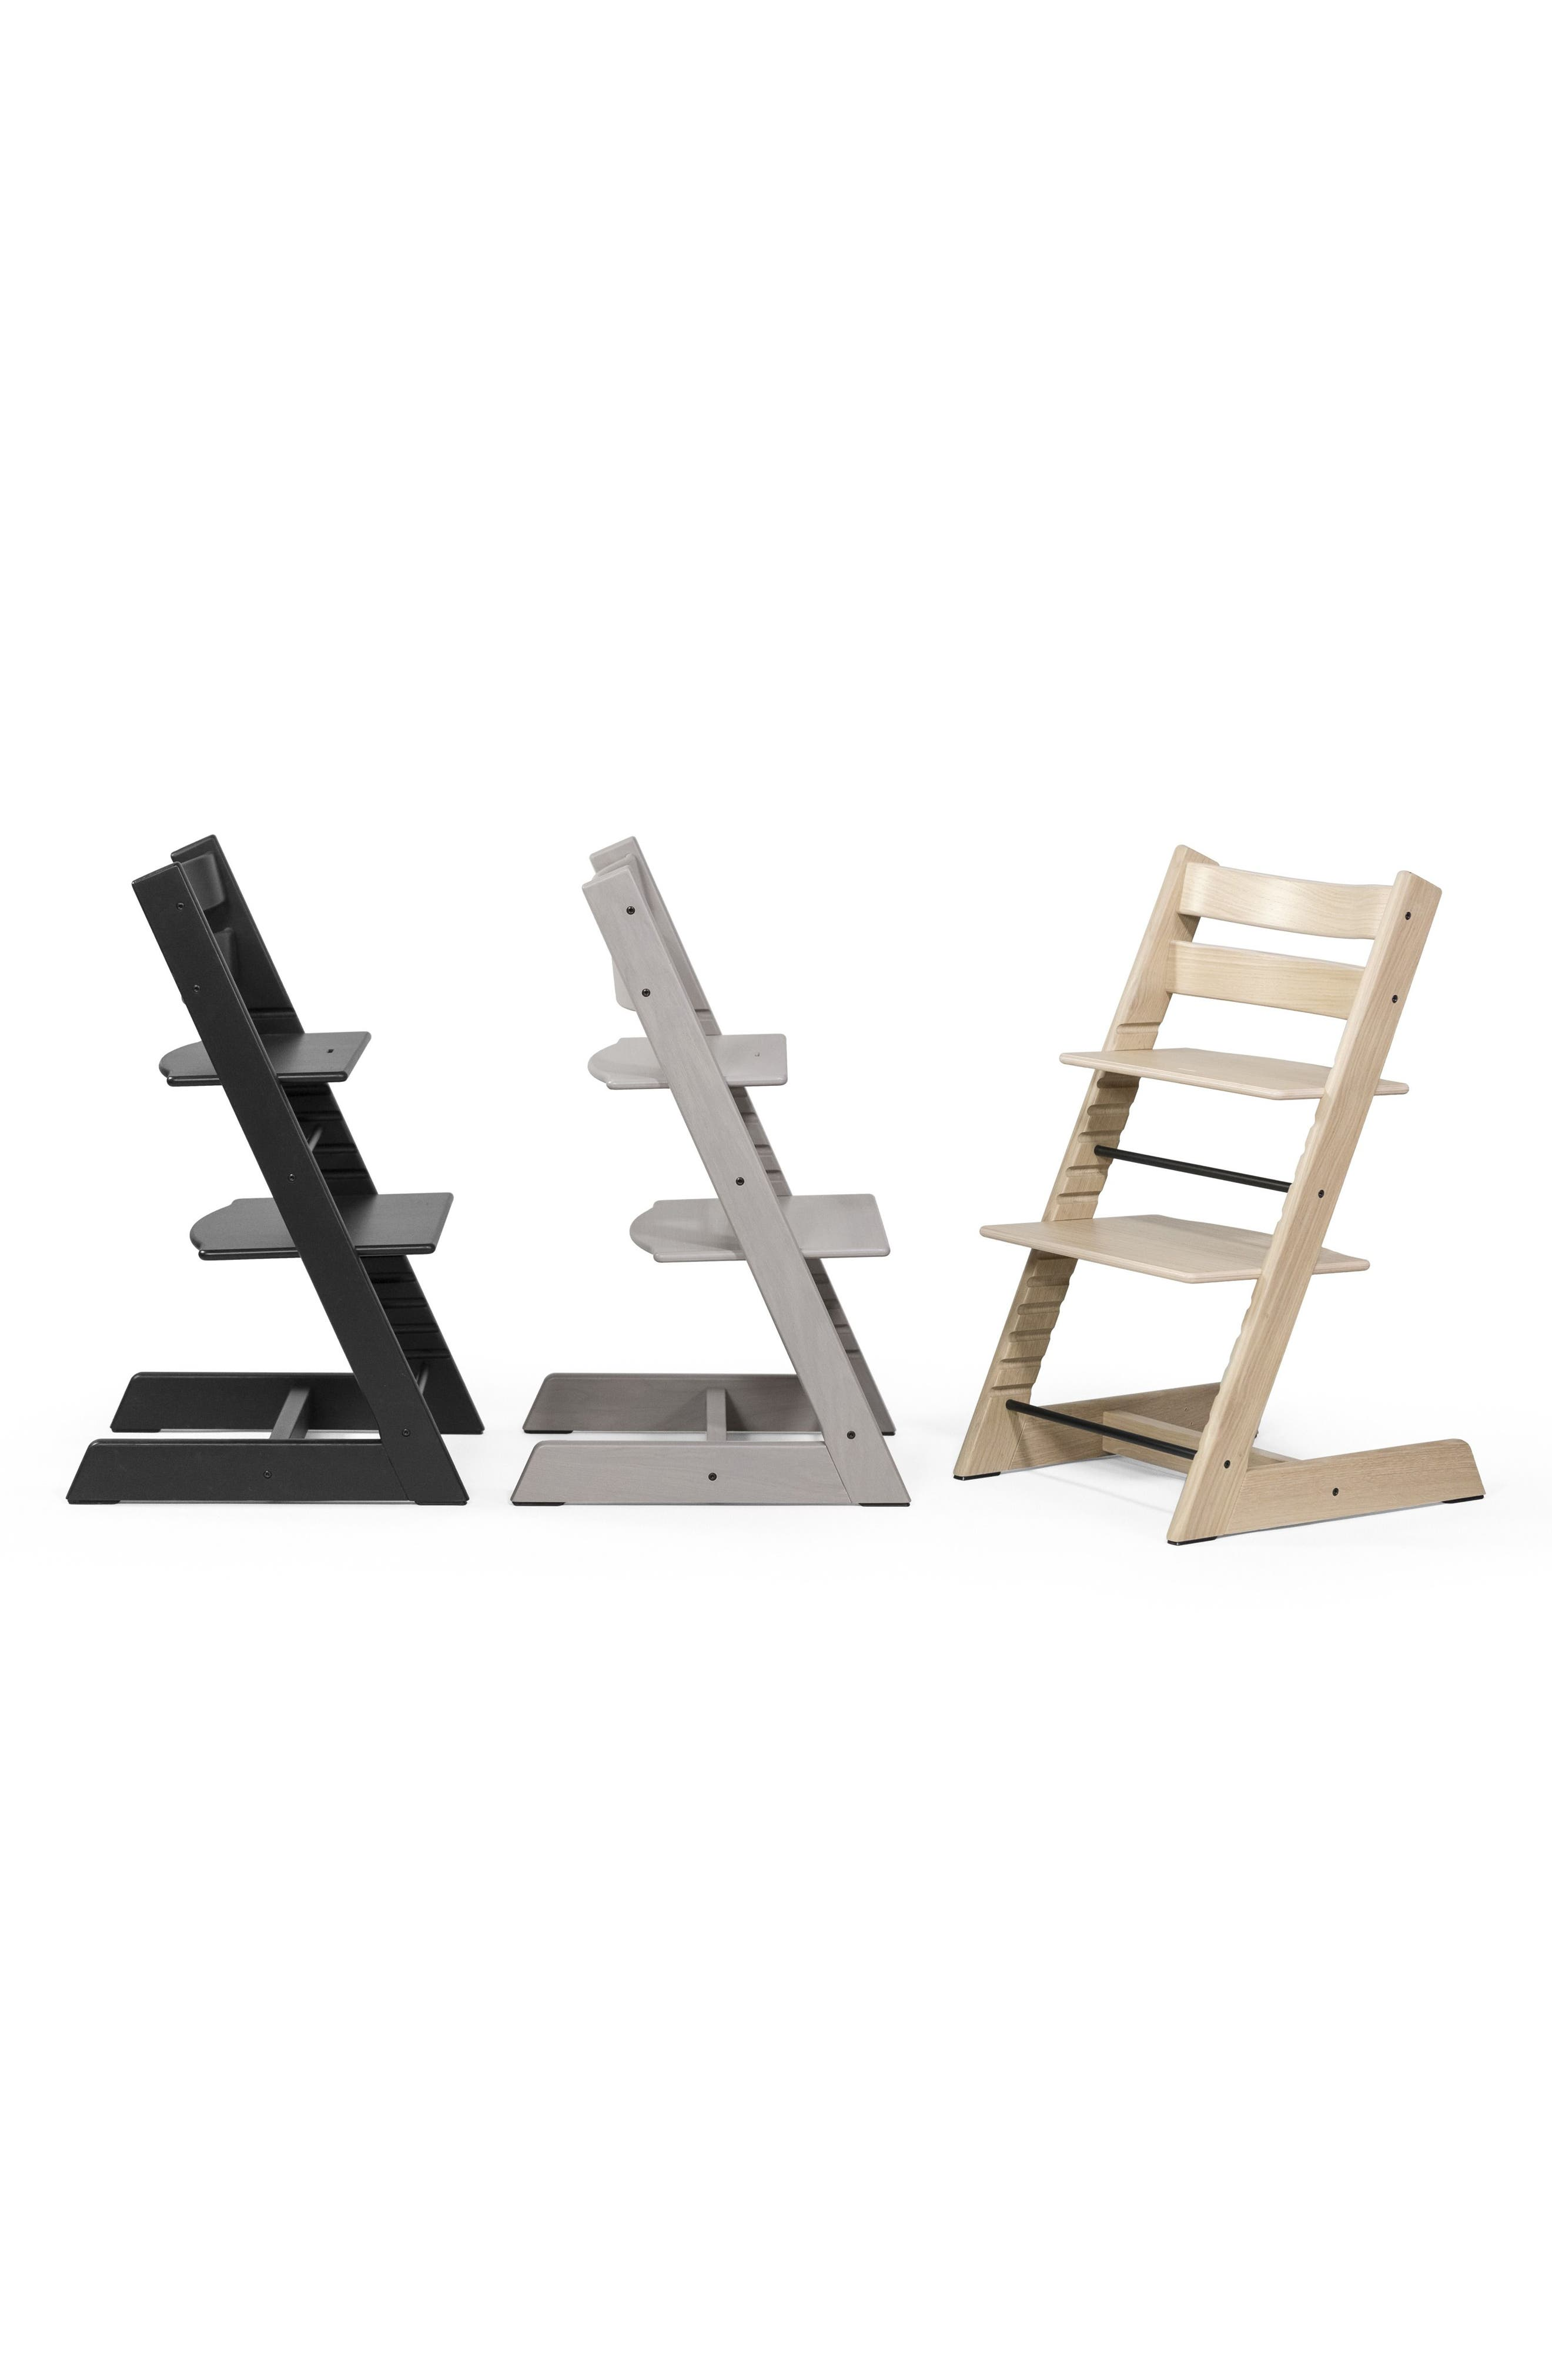 STOKKE,                              Tripp Trapp<sup>®</sup> Limited Edition Oak Chair,                             Alternate thumbnail 3, color,                             019